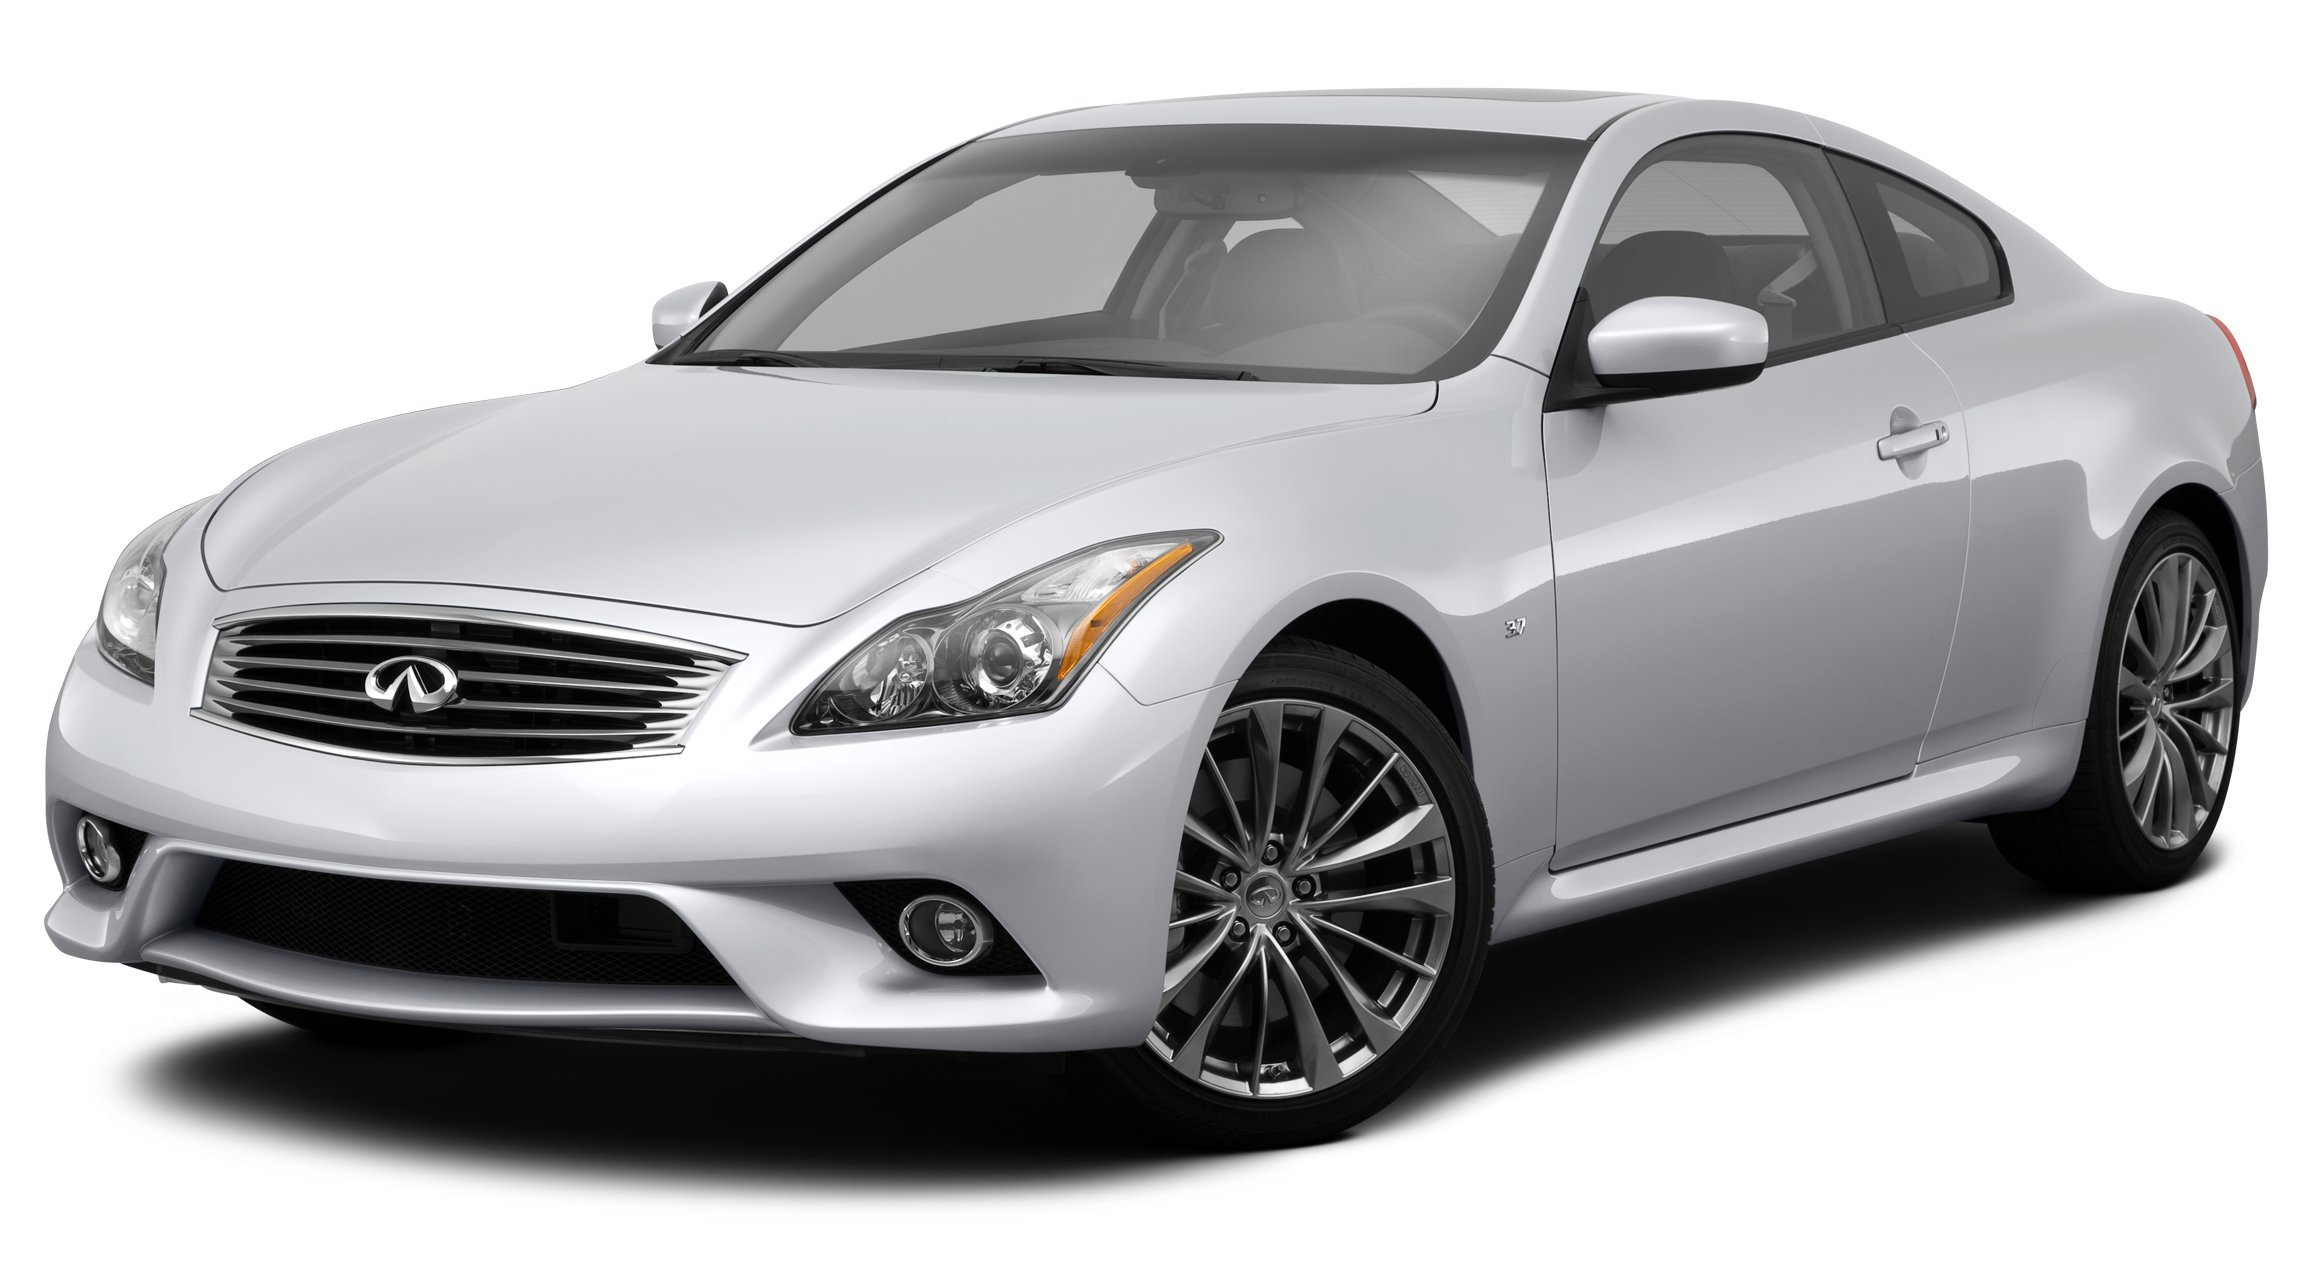 Amazon 2014 Mercedes Benz C250 Reviews and Specs Vehicles